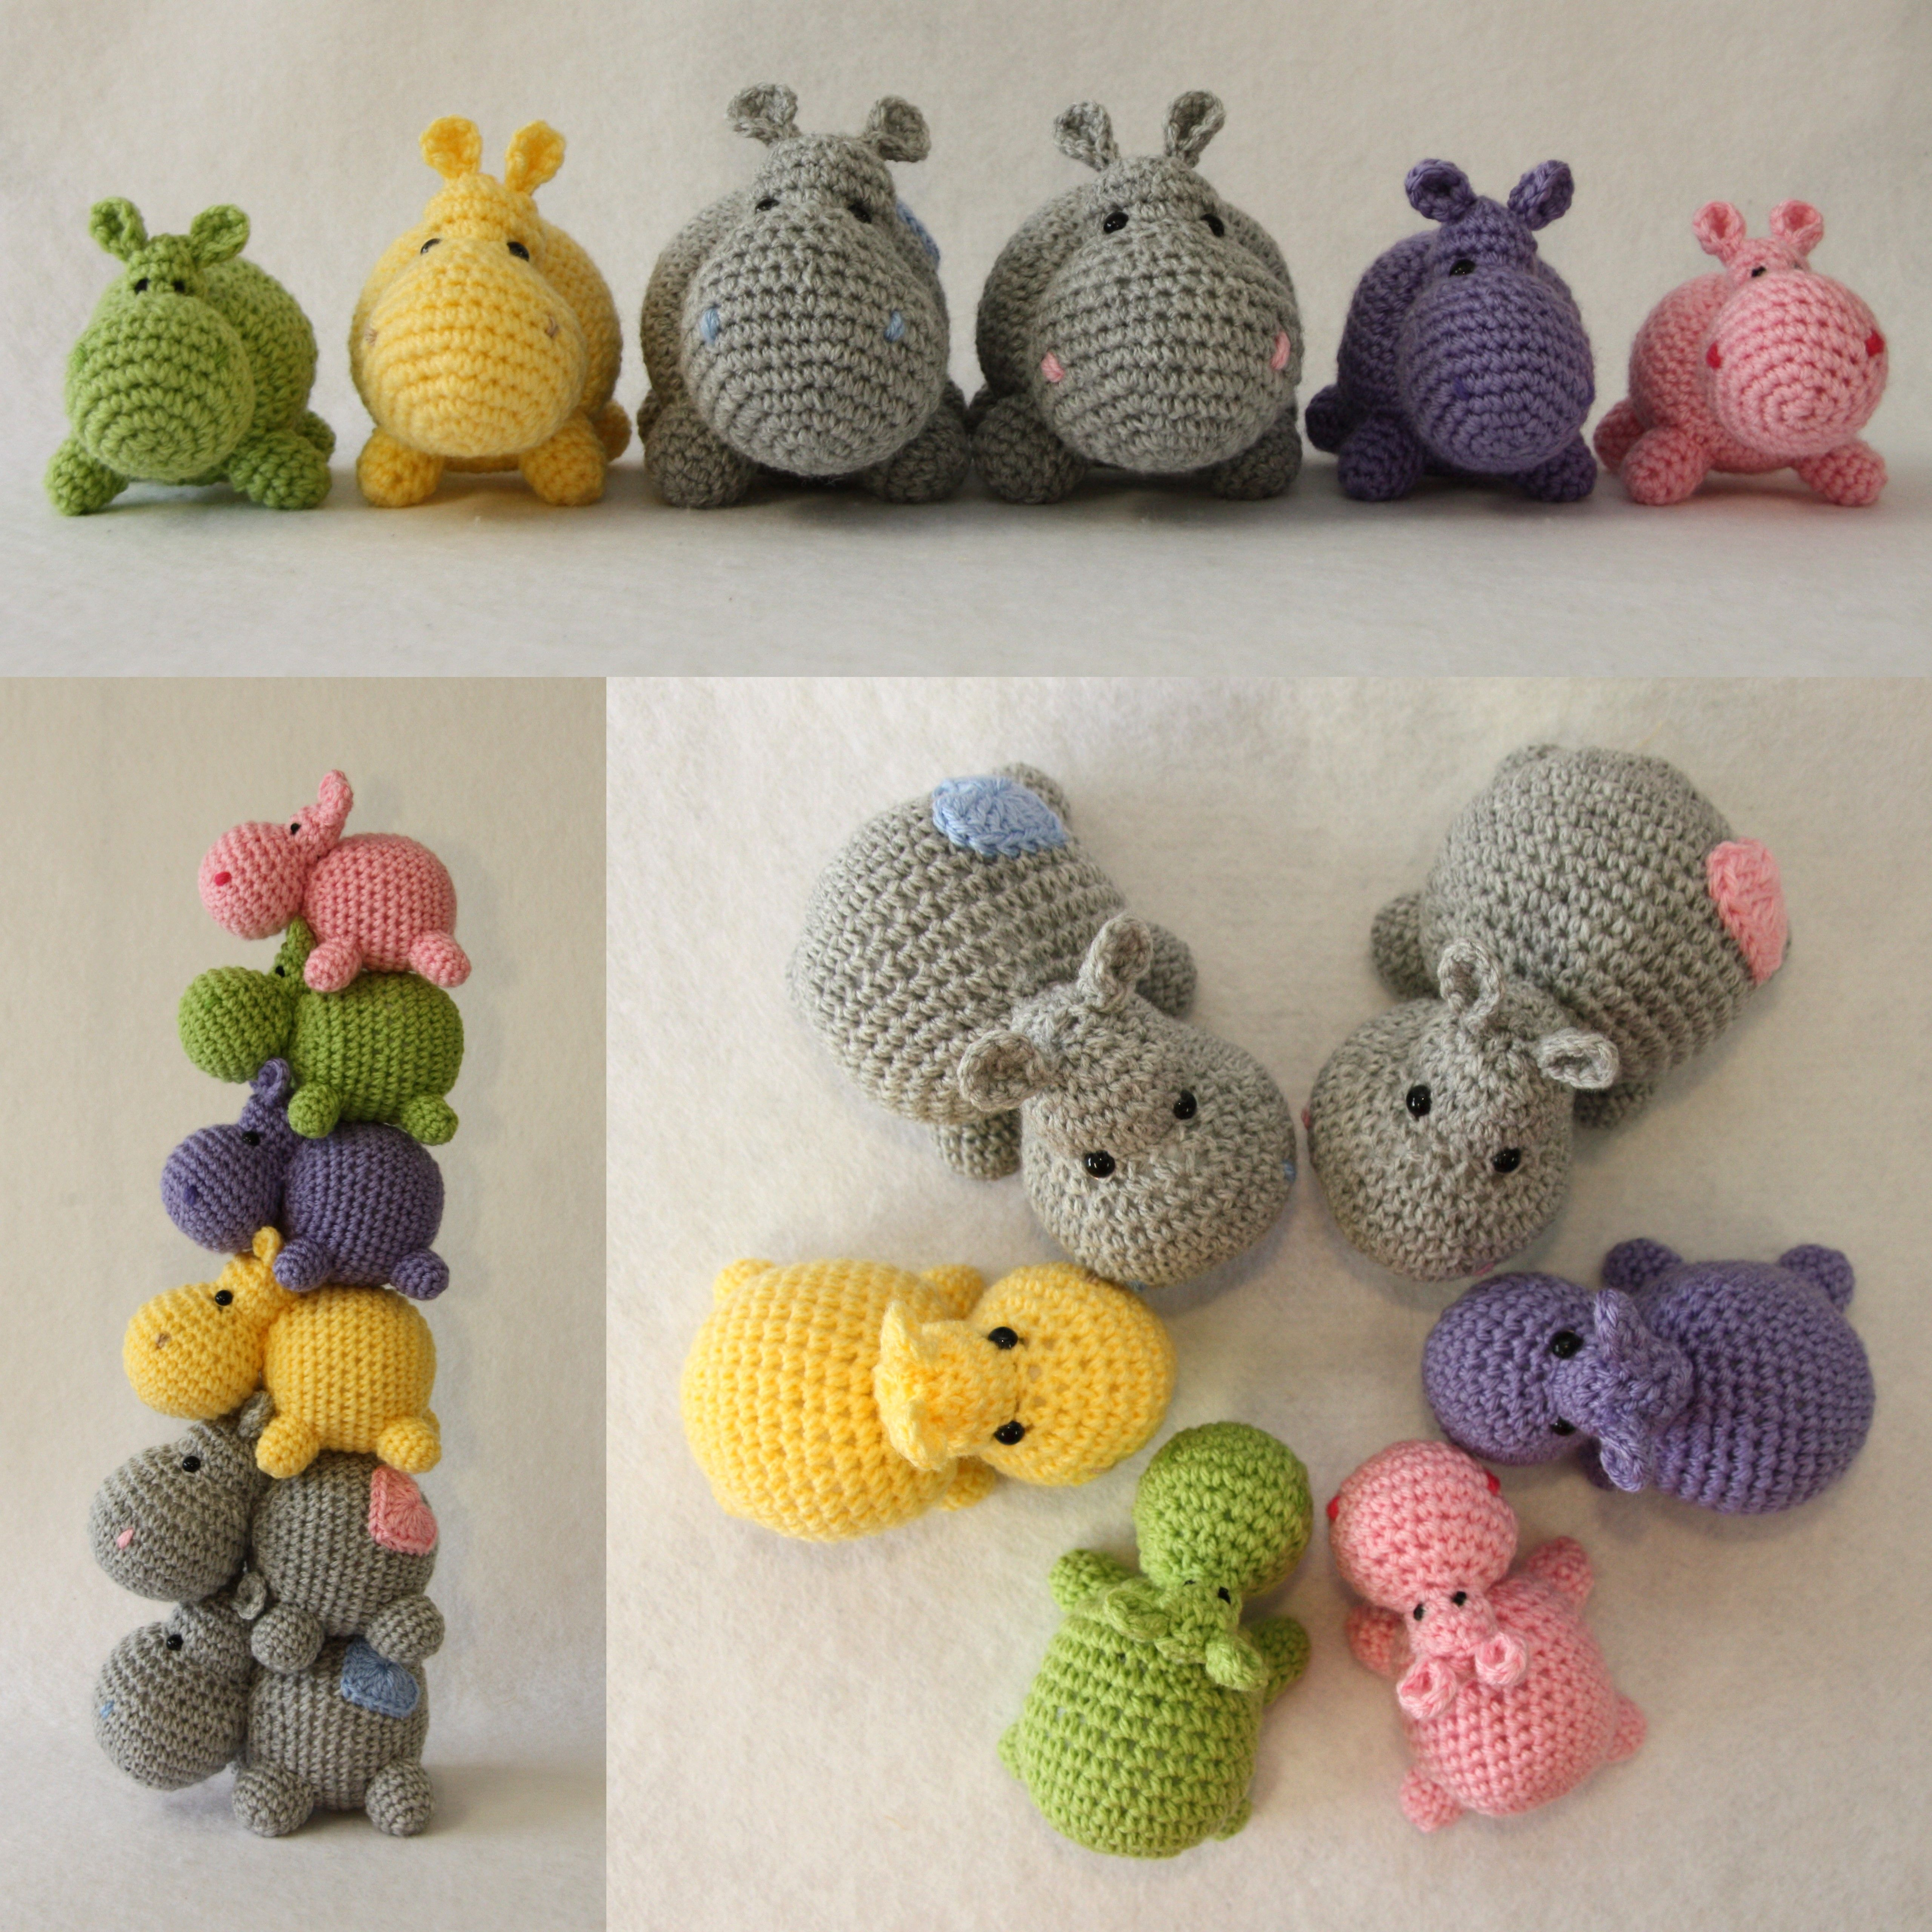 Knitting Mochimochi: 20 Super-Cute Strange Designs for Knitted ... | 5120x5120